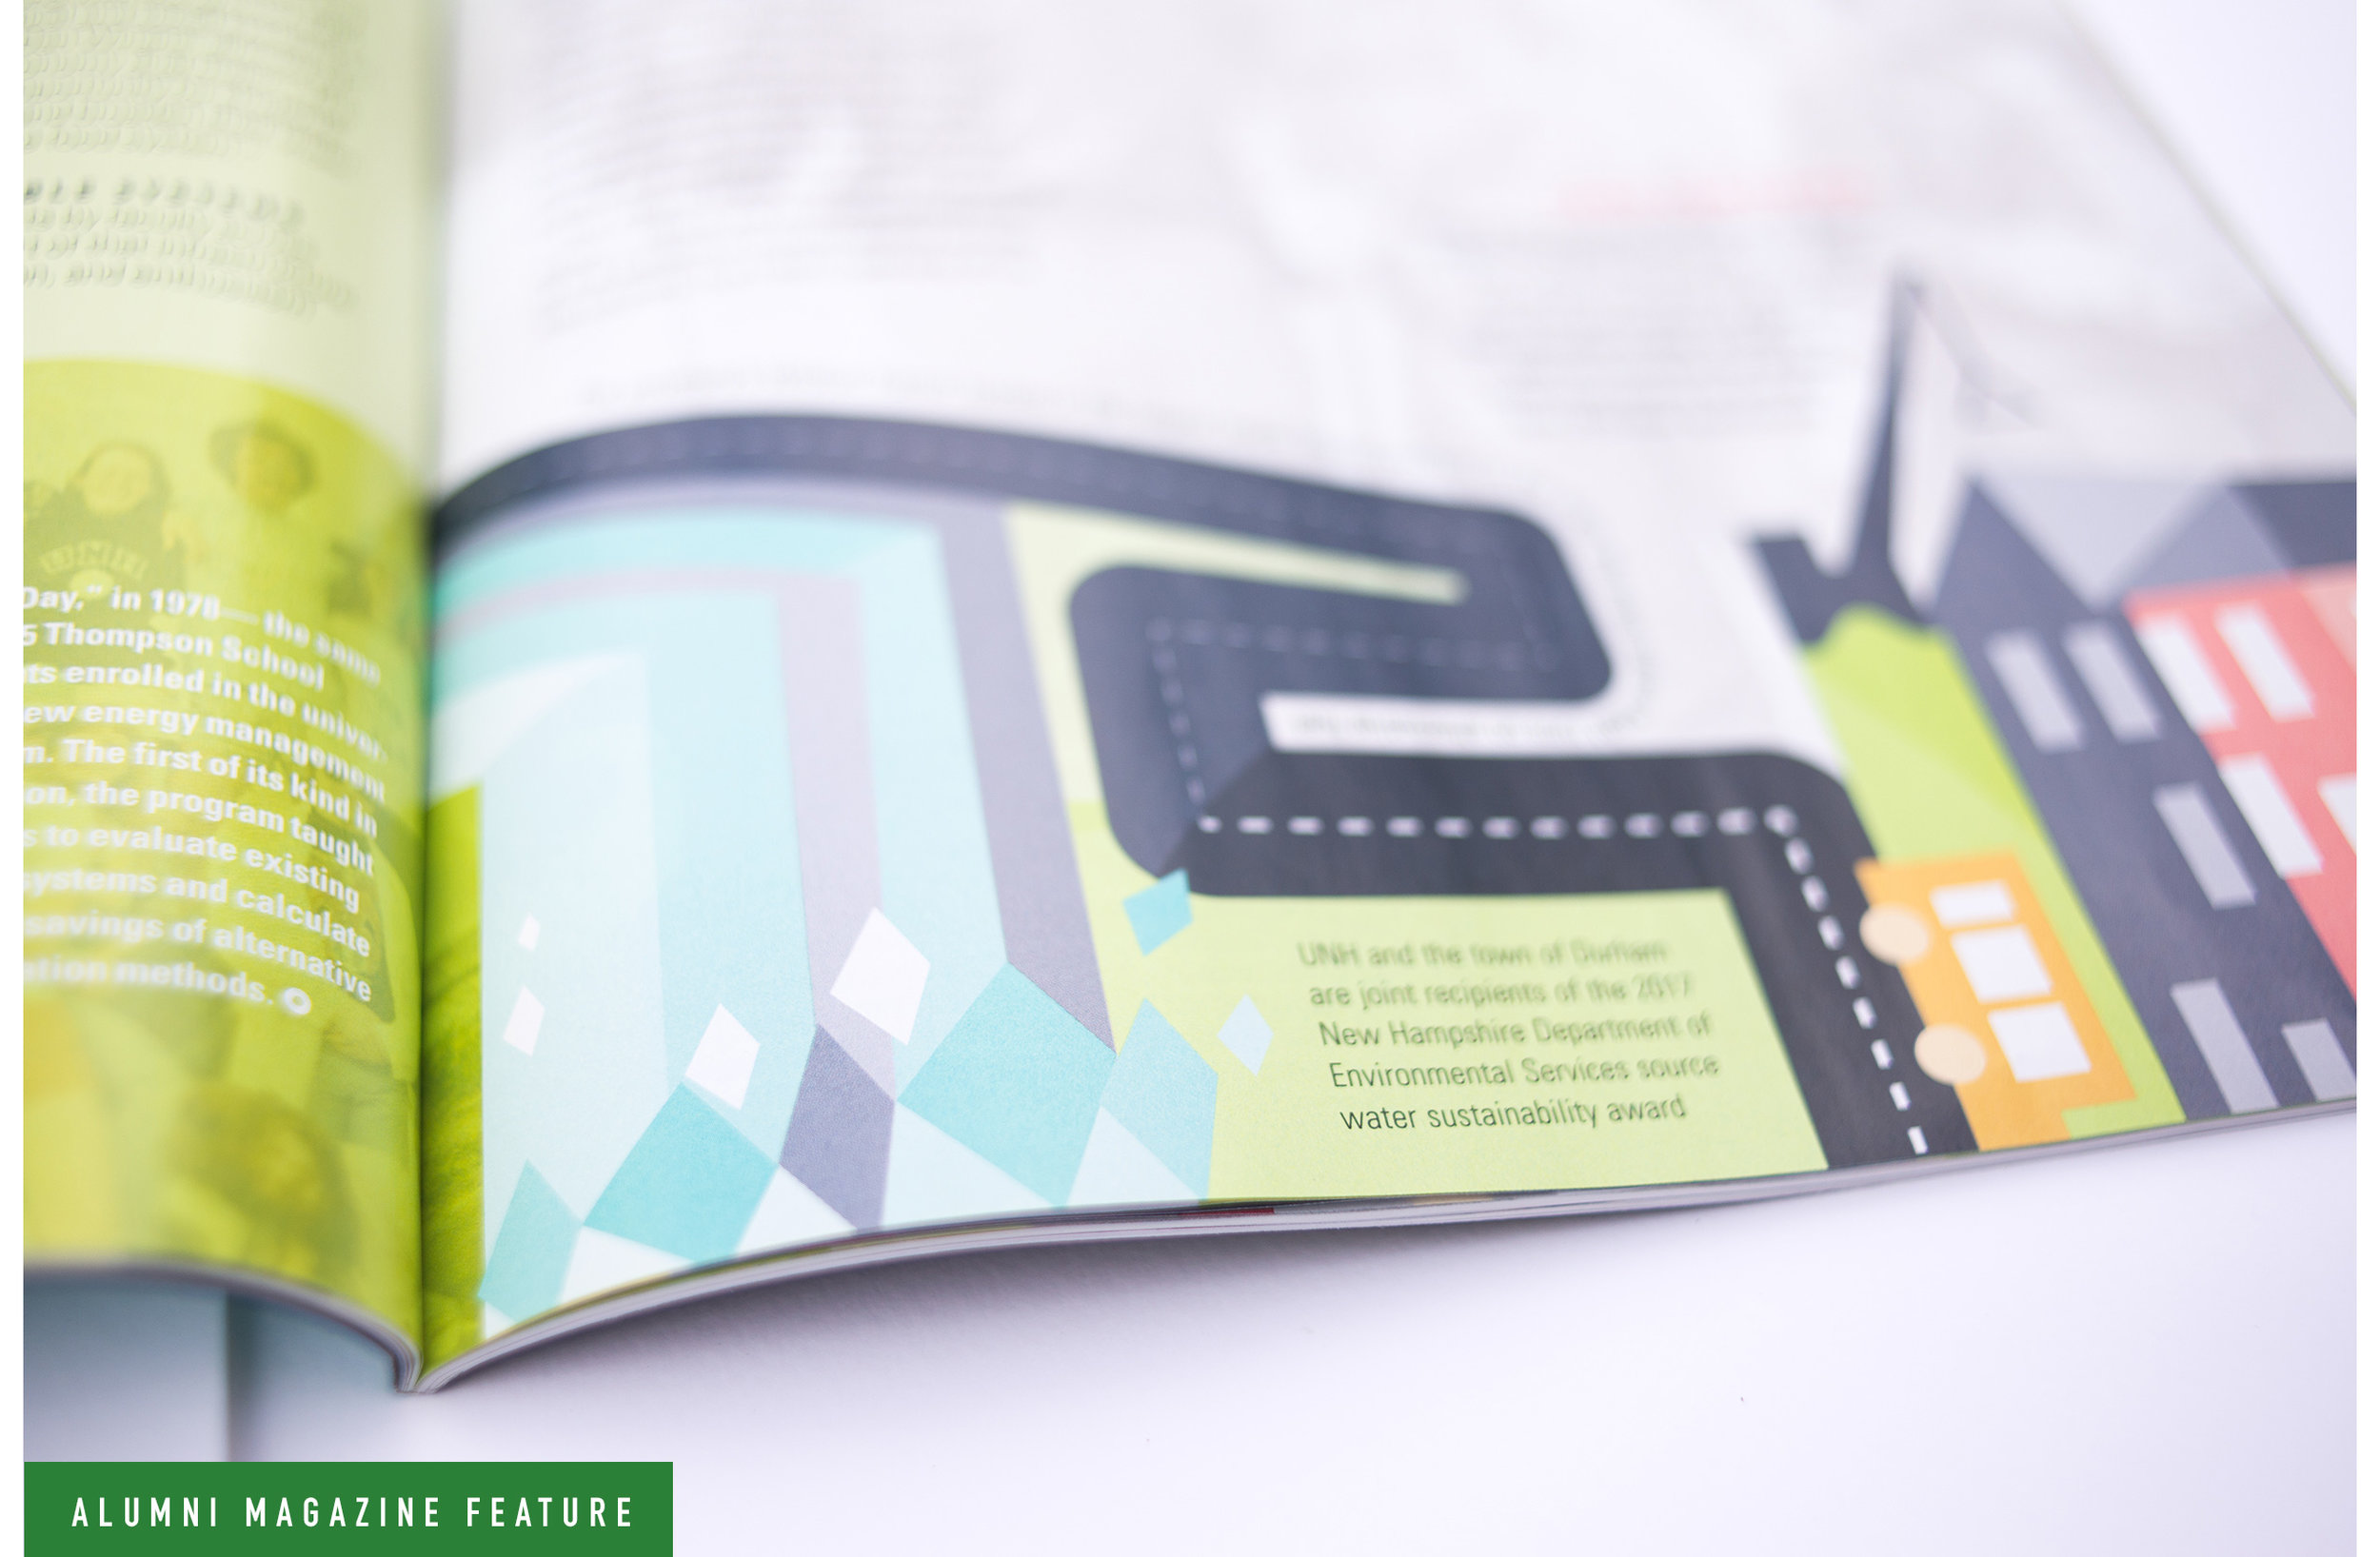 UNH Alumni Magazine Sustainability Feature Spread 4 Design and Illustration - Loren Marple